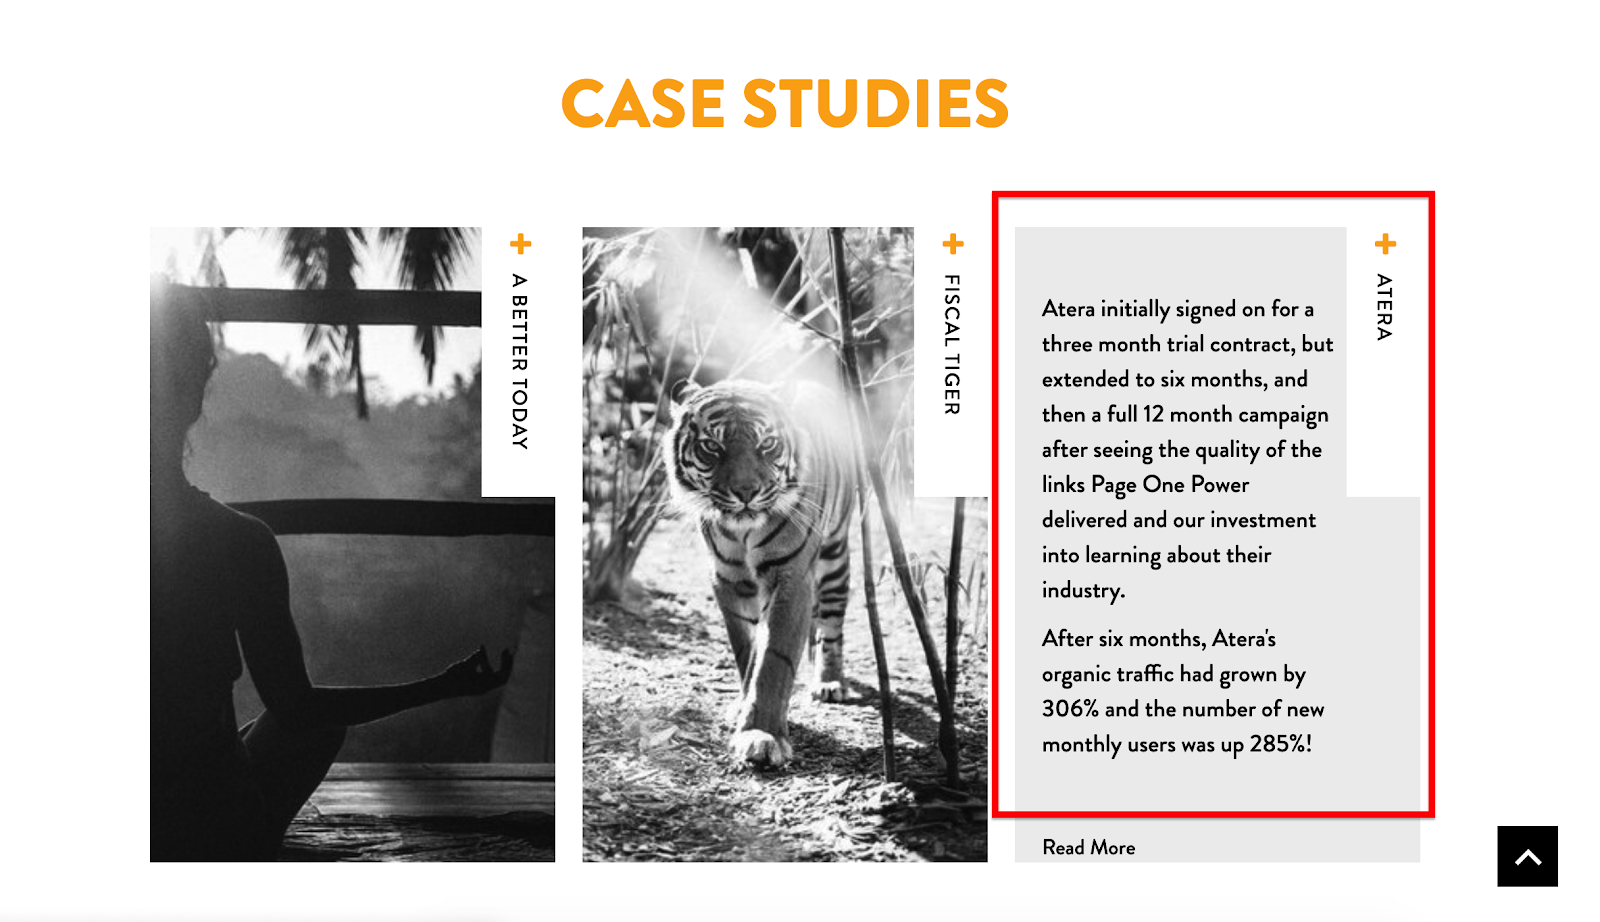 Page One Power case studies